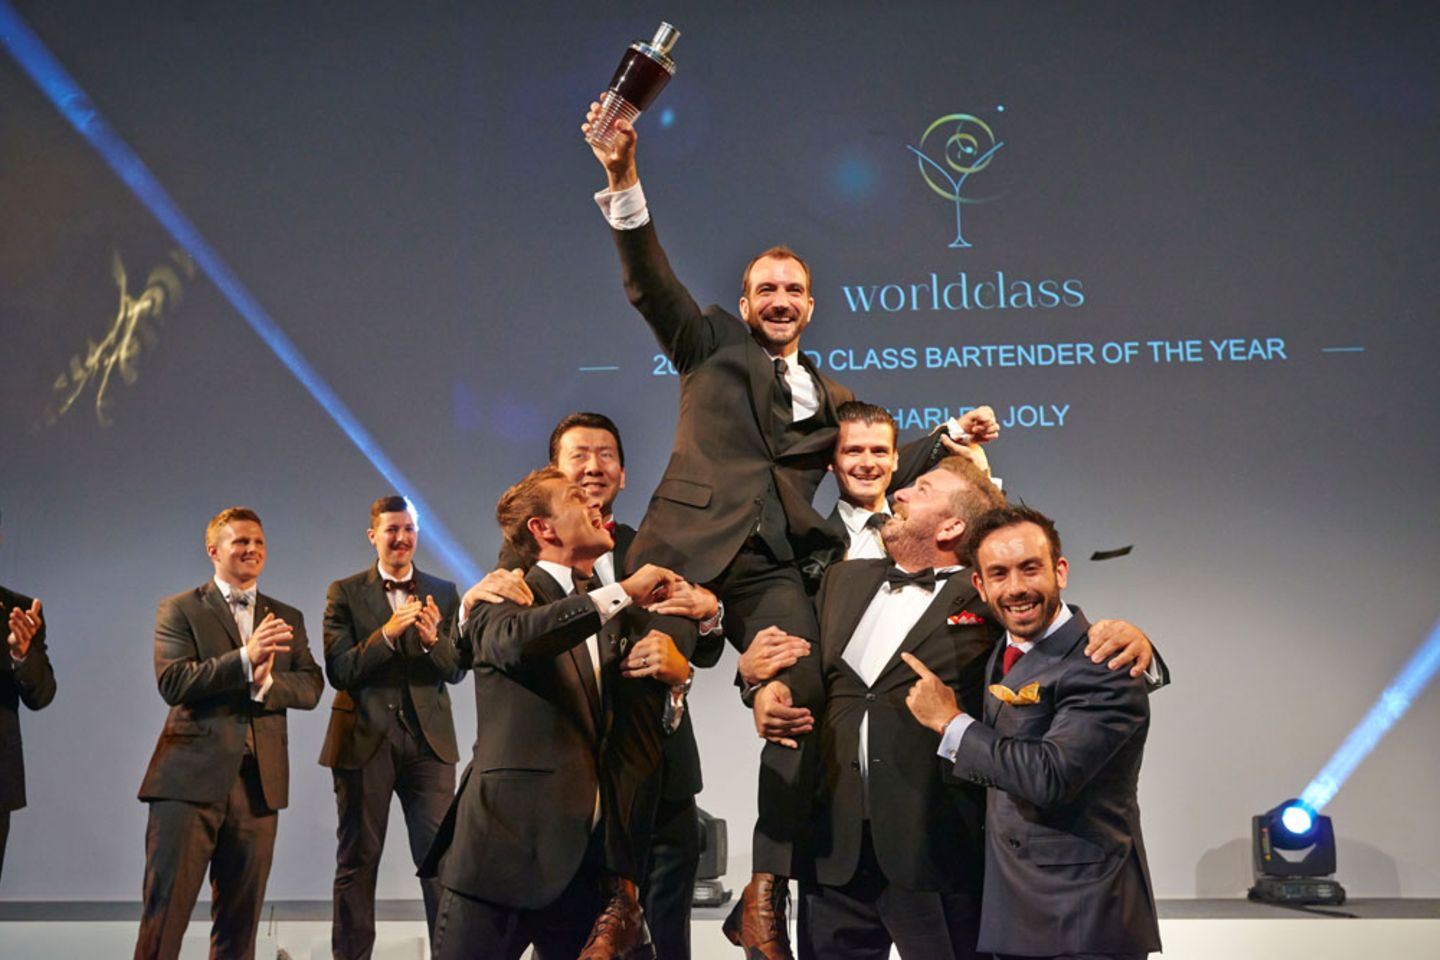 Der World Class Bartender Of The Year: Charles Joly